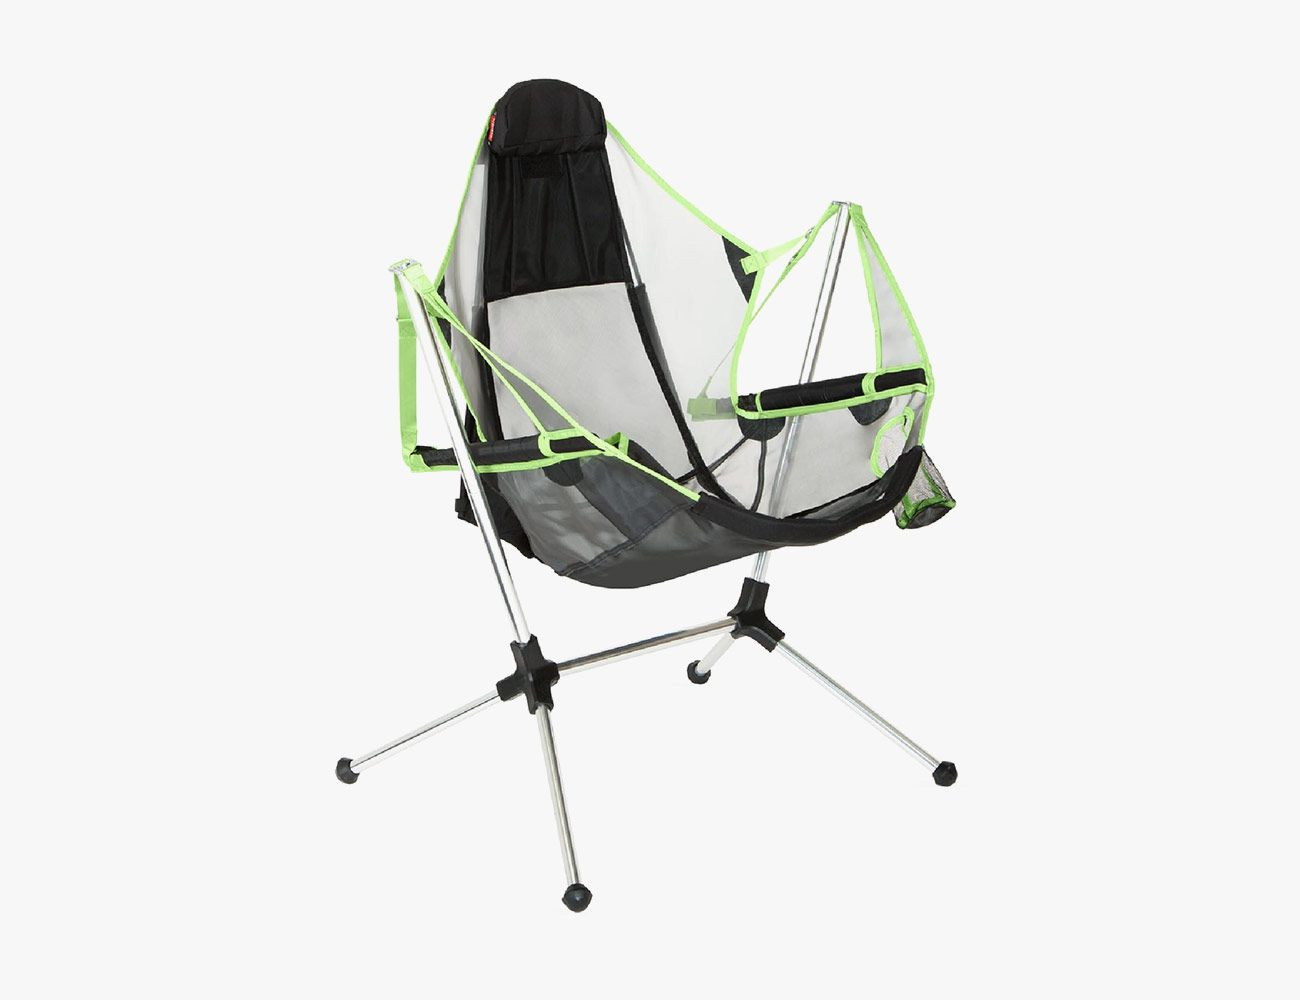 The Best Camping Chairs Available For Every Camper Gear